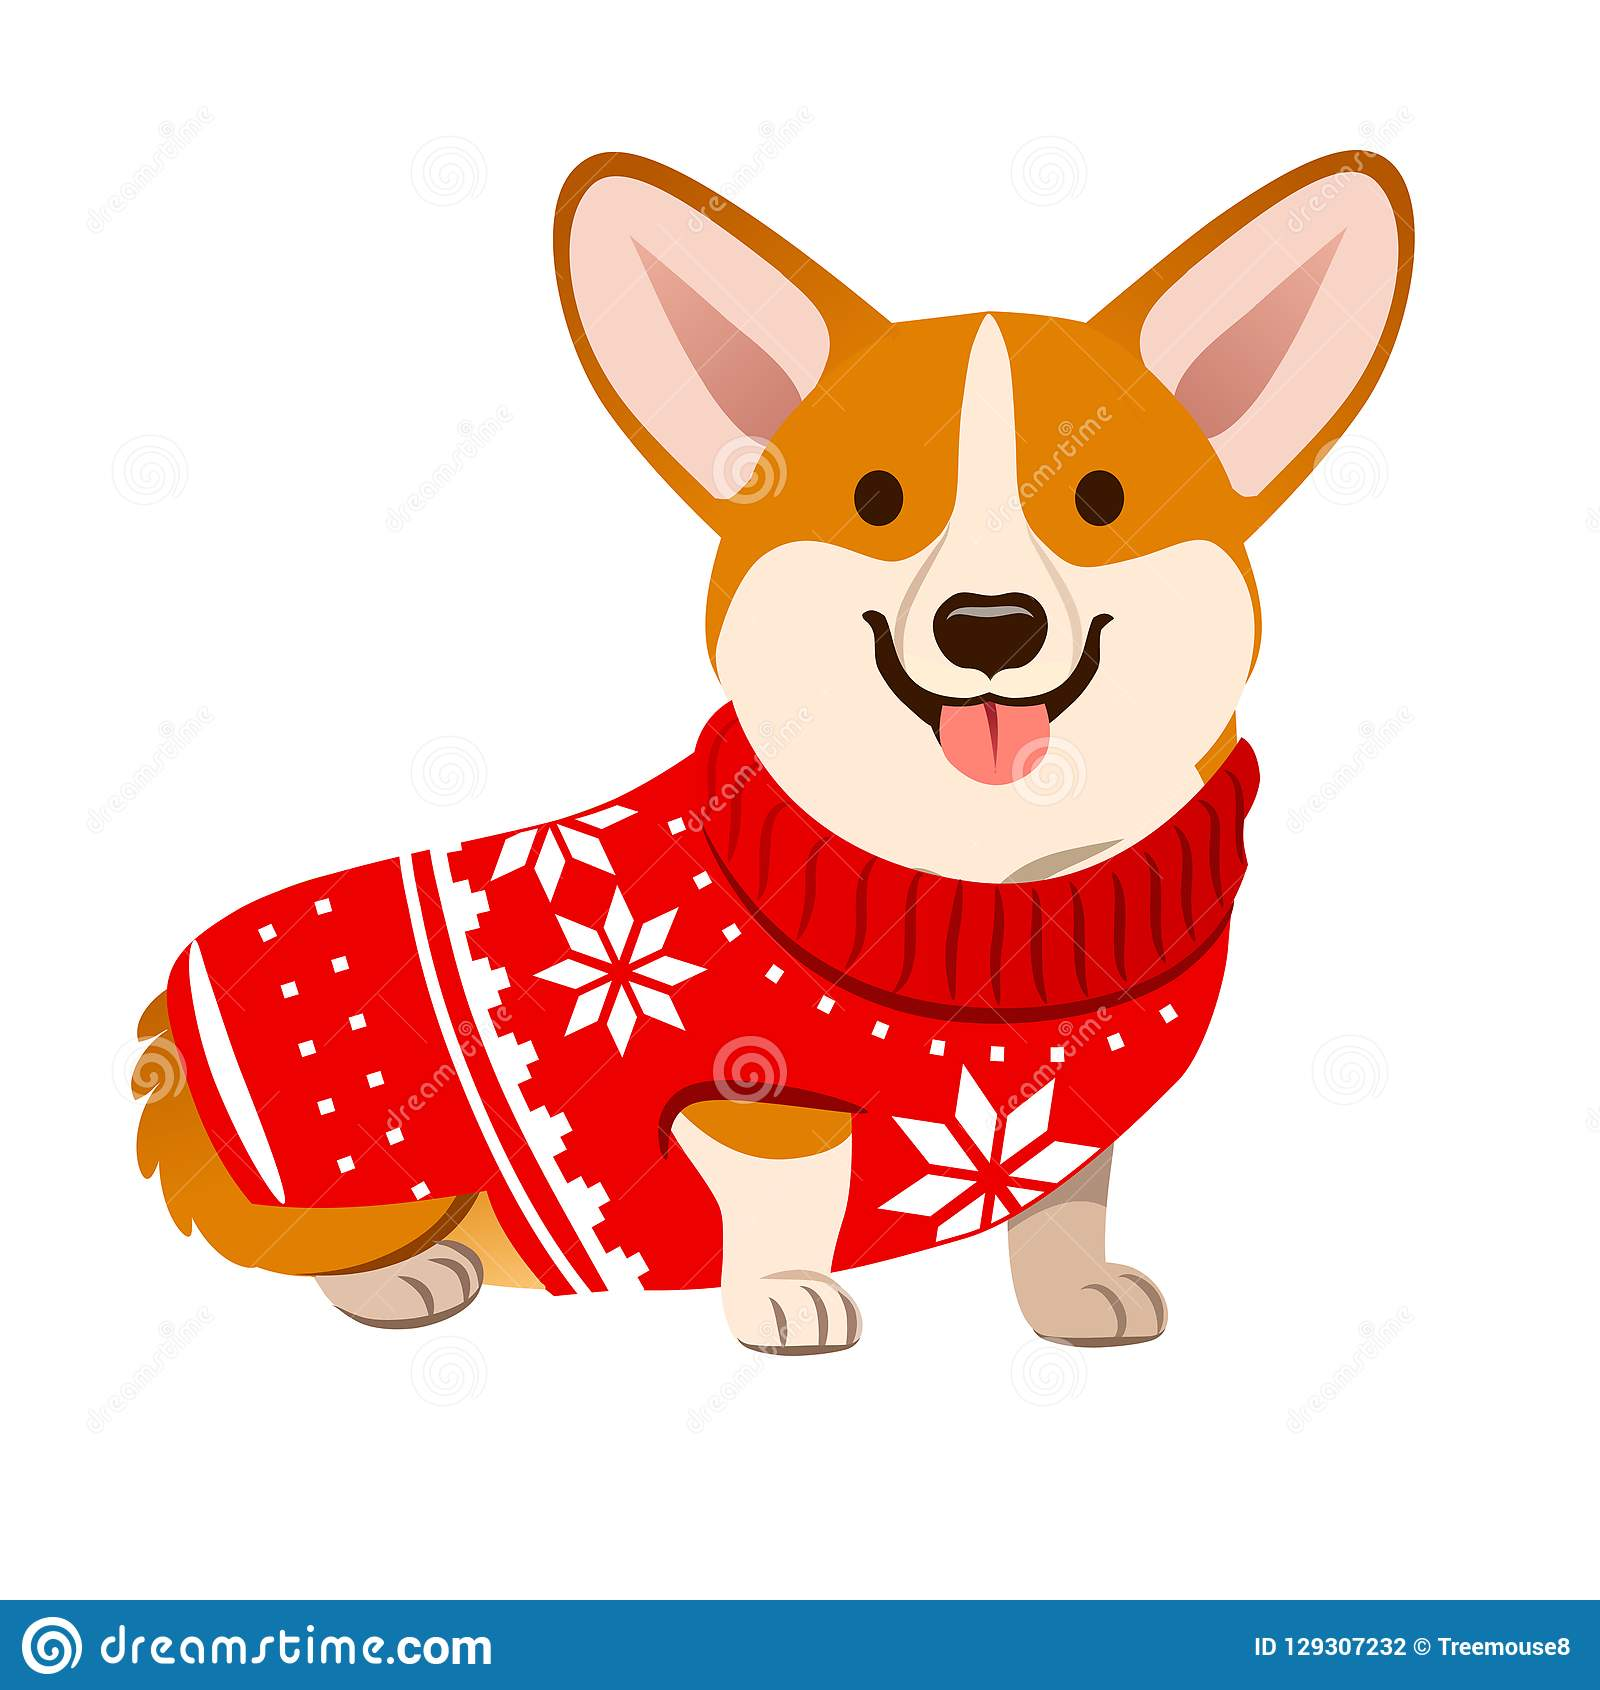 9cf953c5 Corgi dog wearing a Christmas red sweater with Nordic snowflake pattern  vector cartoon illustration isolated on white. Funny humorous Christmas, pet  lover, ...